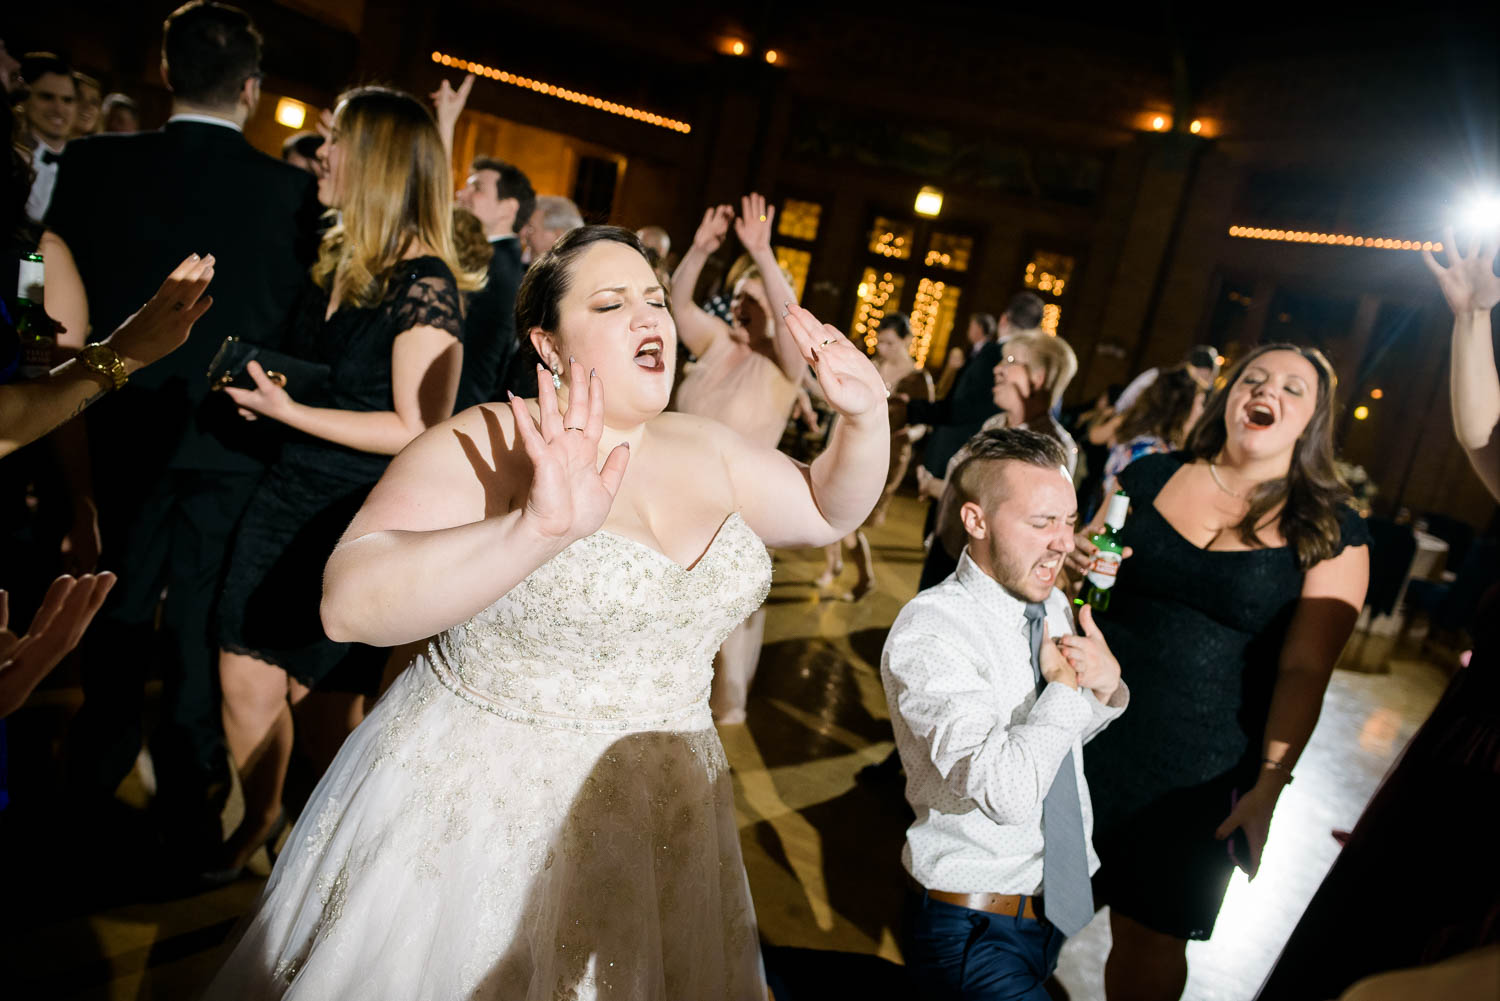 Fun dance floor moment during a Cafe Brauer wedding reception in Chicago.